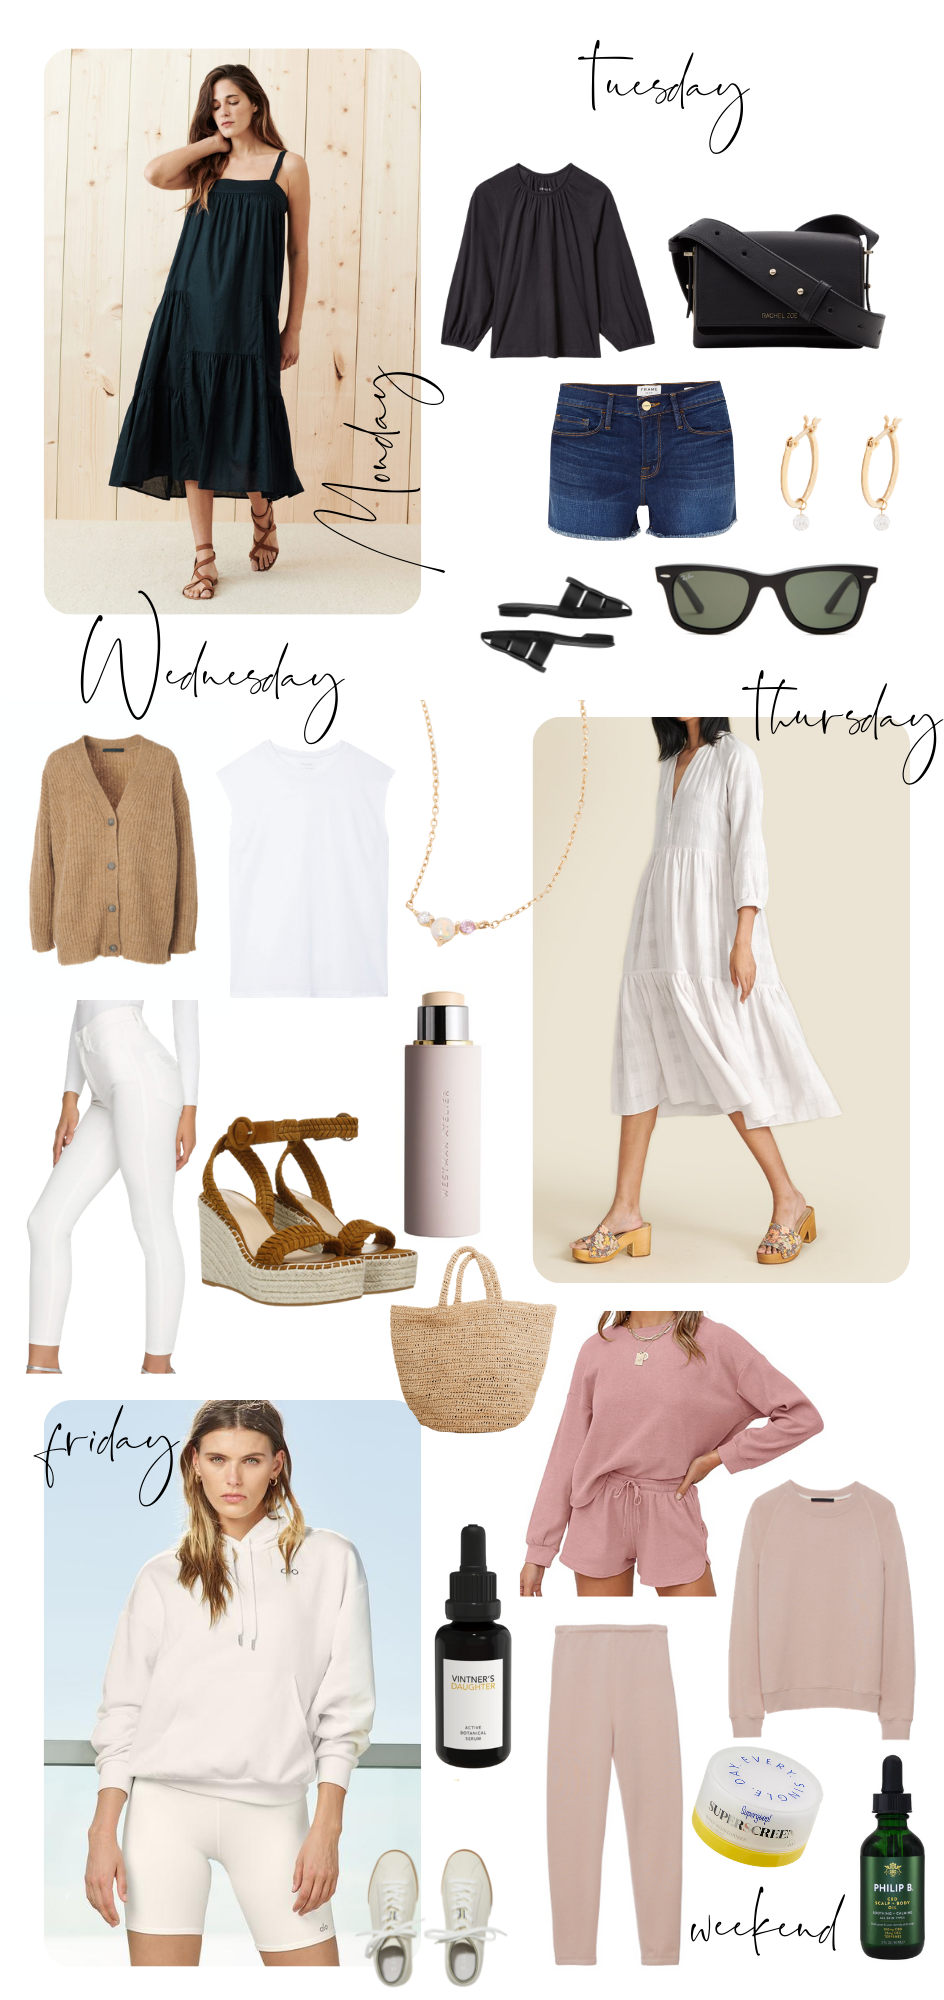 Outfit Ideas by popular Monterey fashion blog, Haute Beauty Guide: collage image of a black tiered midi dress, black 3/4 sleeve blouse, Marc Jacobs waist bag, shorts, black flat close toe sandals, brown sweater, white t-shirt, pearl necklaces, white maxi dress, white dress pants, brown espadrilles, straw bag, pink loungewear set, white hoodie sweatshirt, white sneakers, Vintner's Daughter serum, black frame sandals, and pearl hoop earrings.